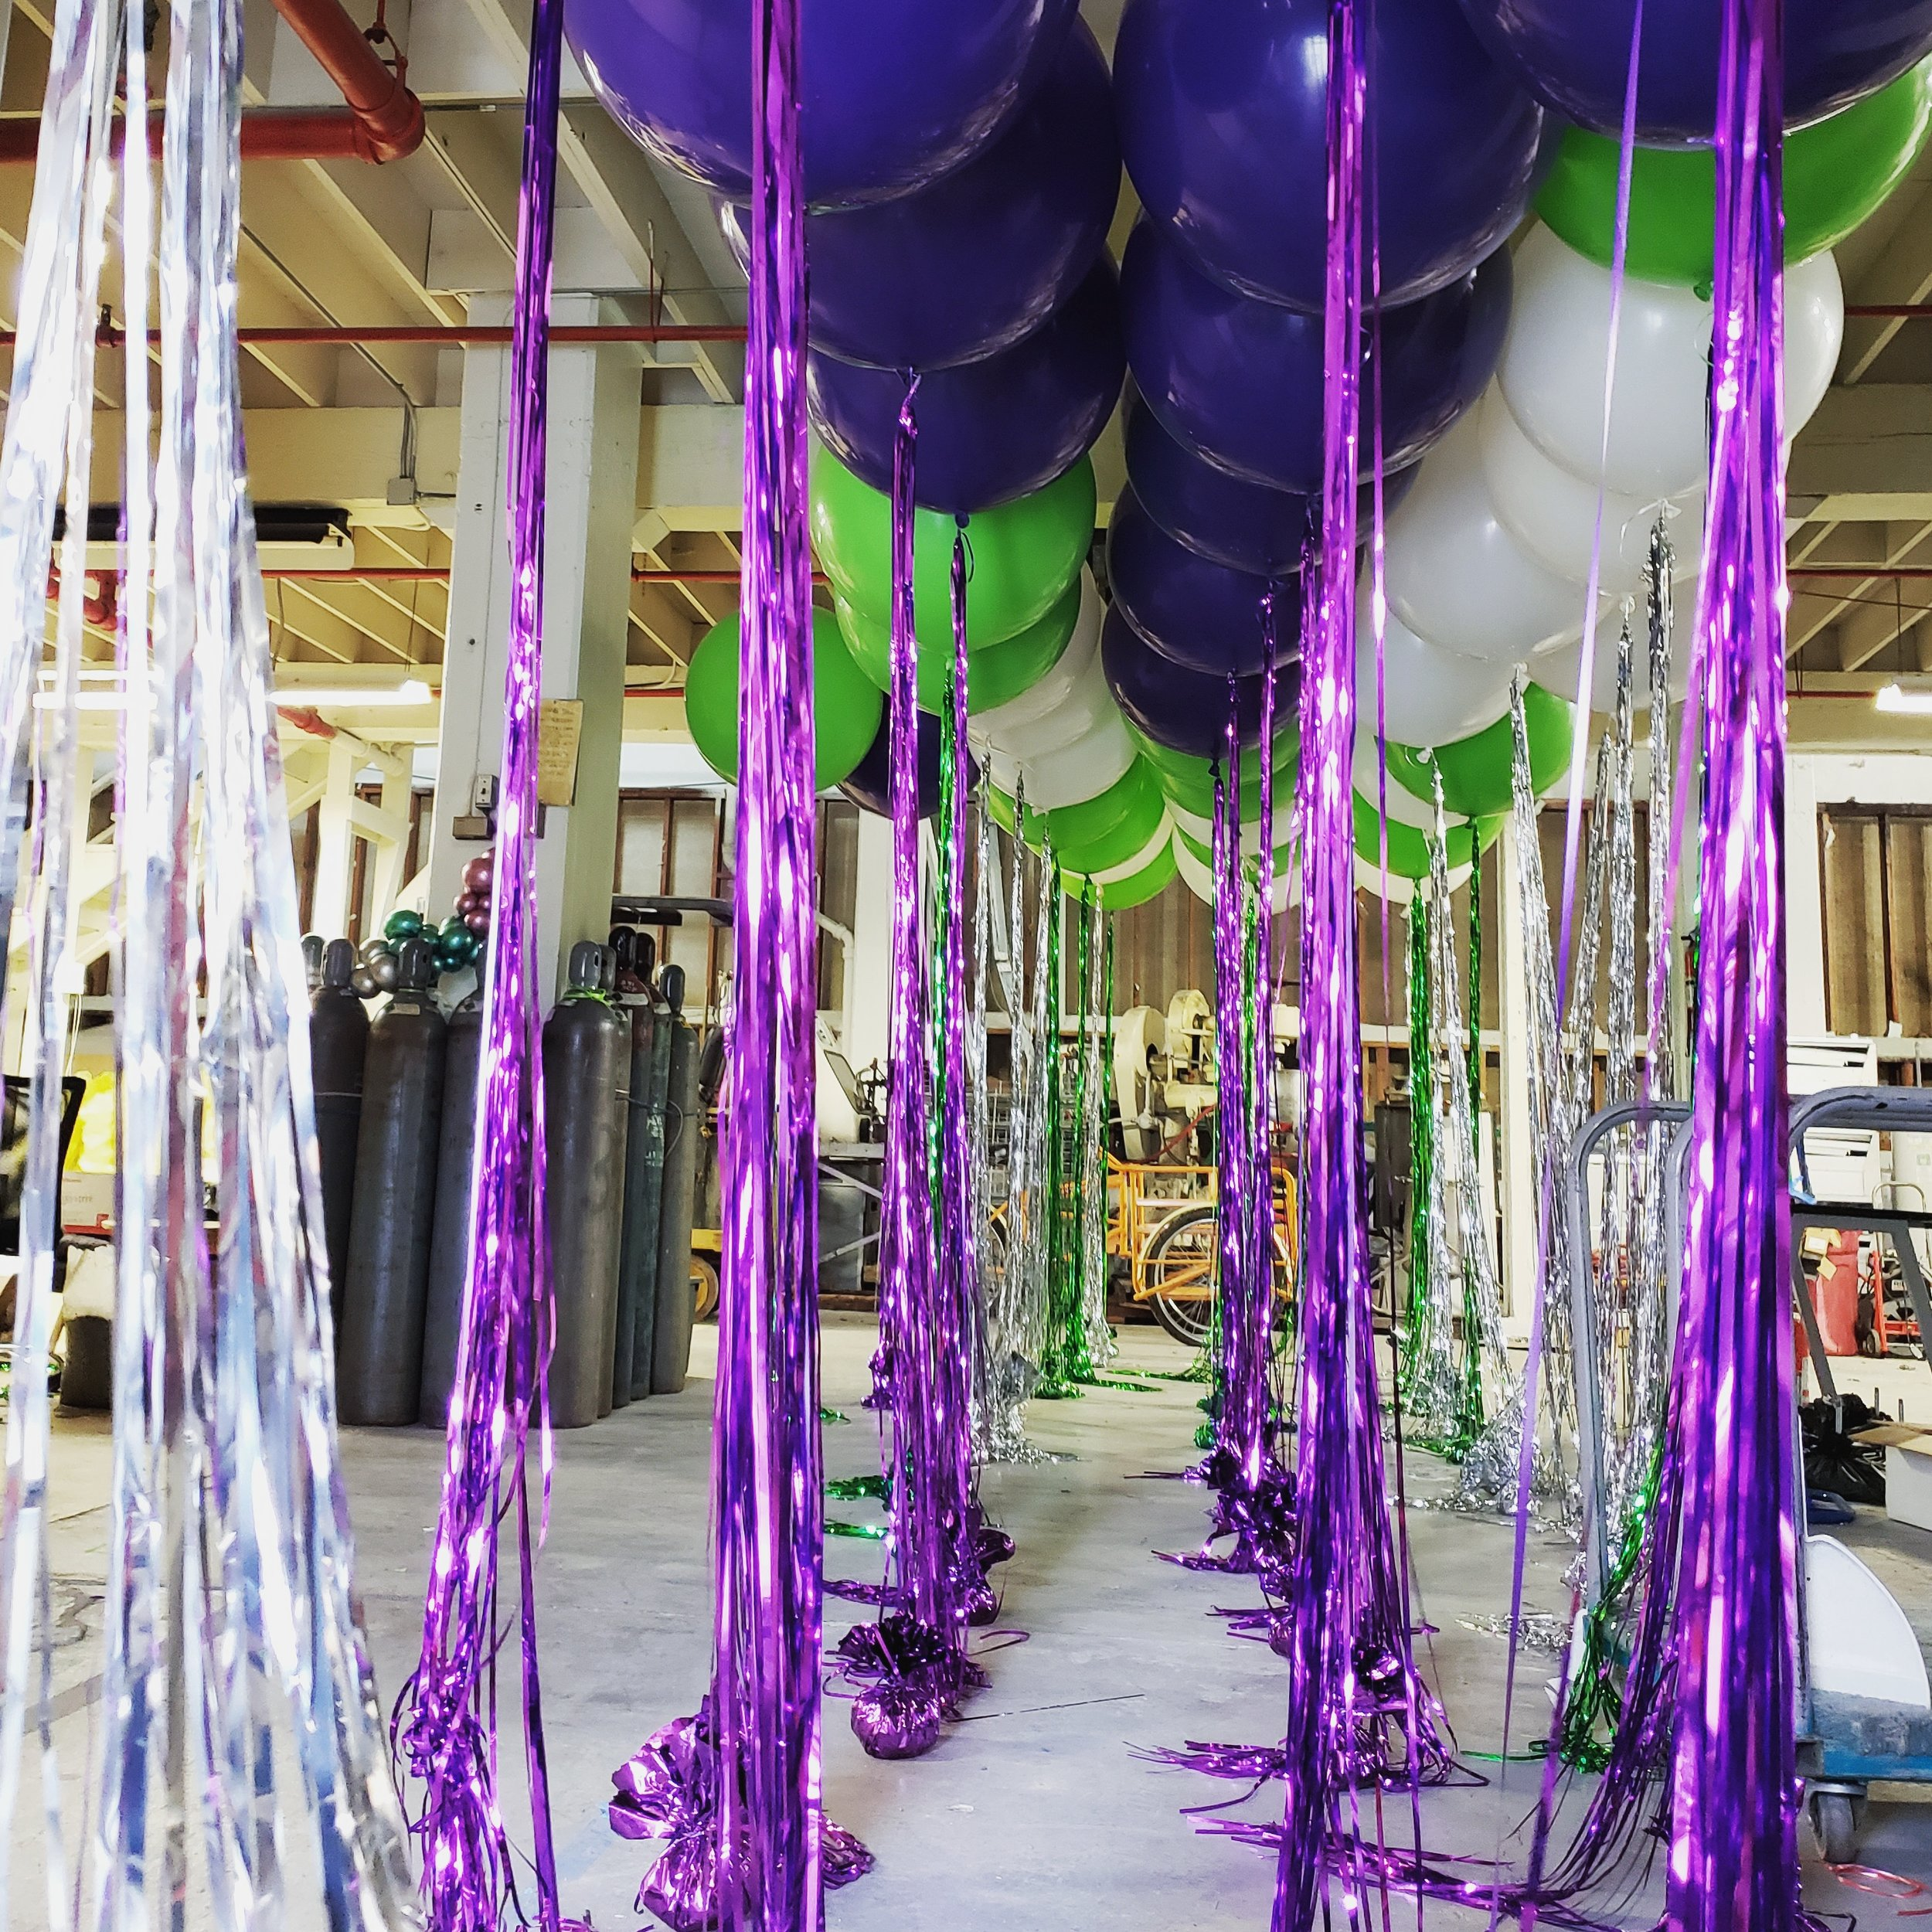 3Ft Tassle Balloons with Fringe - Helium Balloon Shop SF - Zim Balloons.jpg